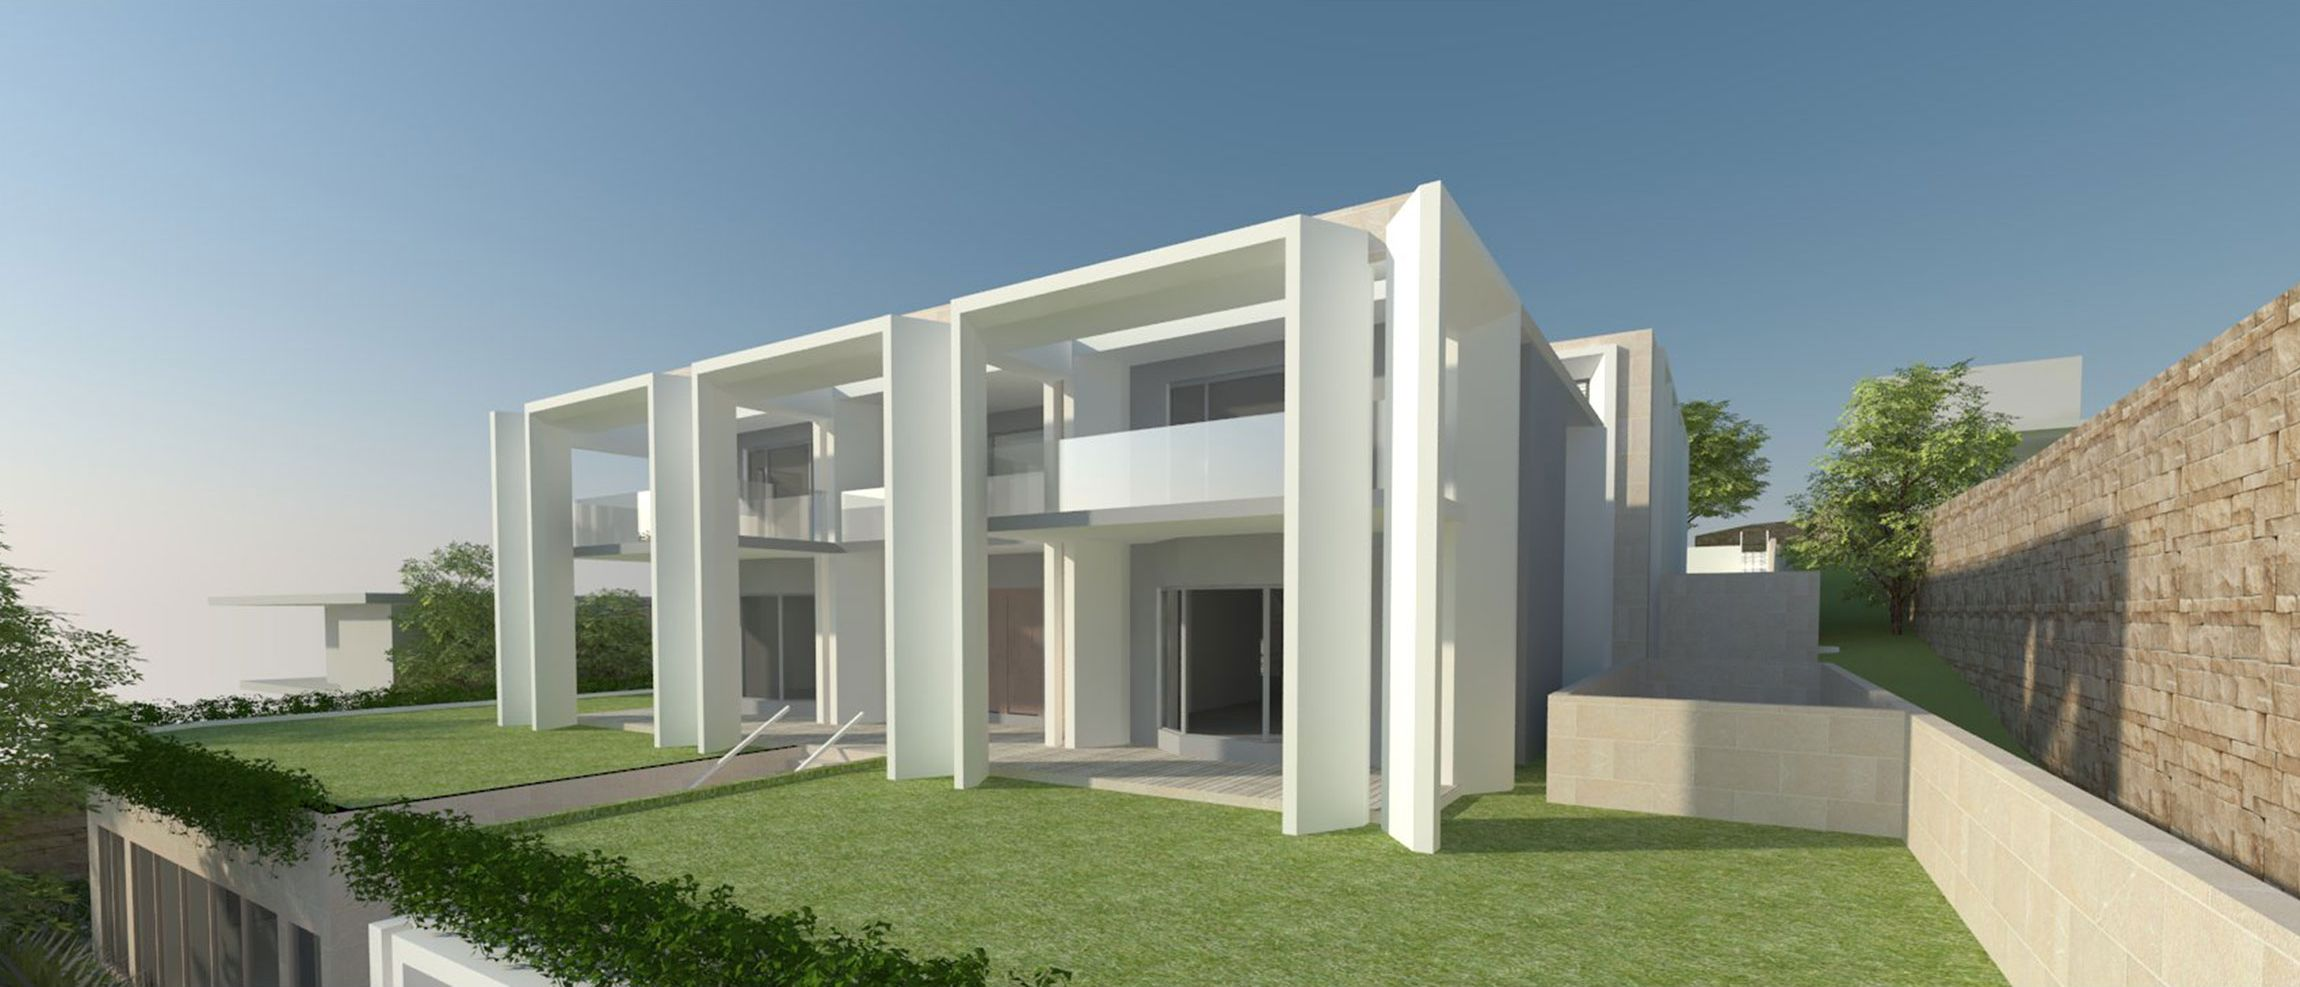 Vaucluse Residence web 1200h - 2